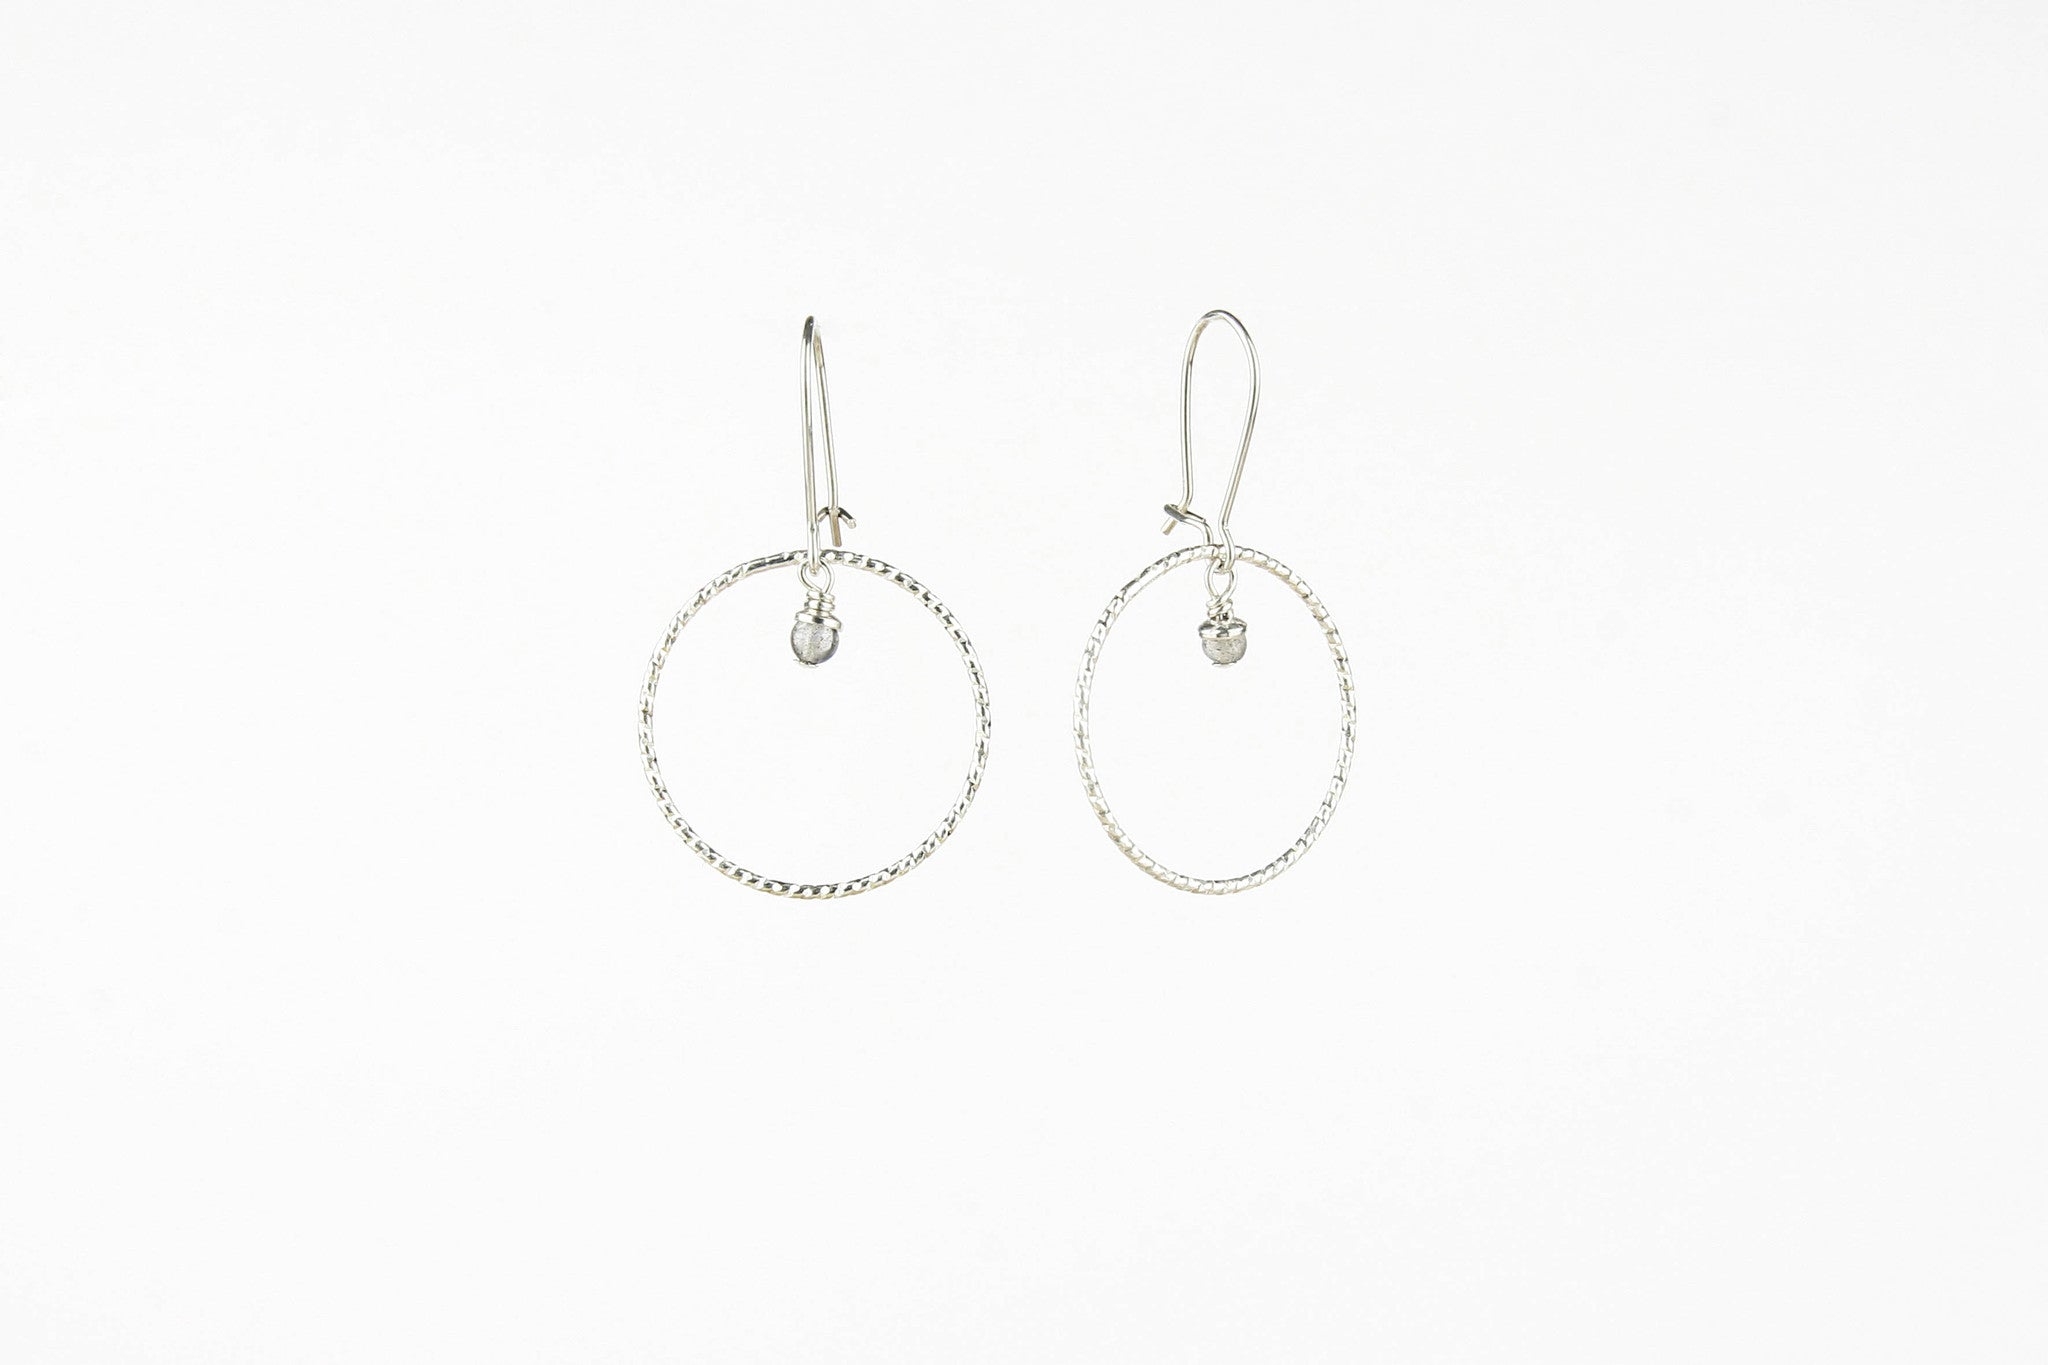 Ohrringe SHINY CIRCLE SMALL 925 Sterling Silber